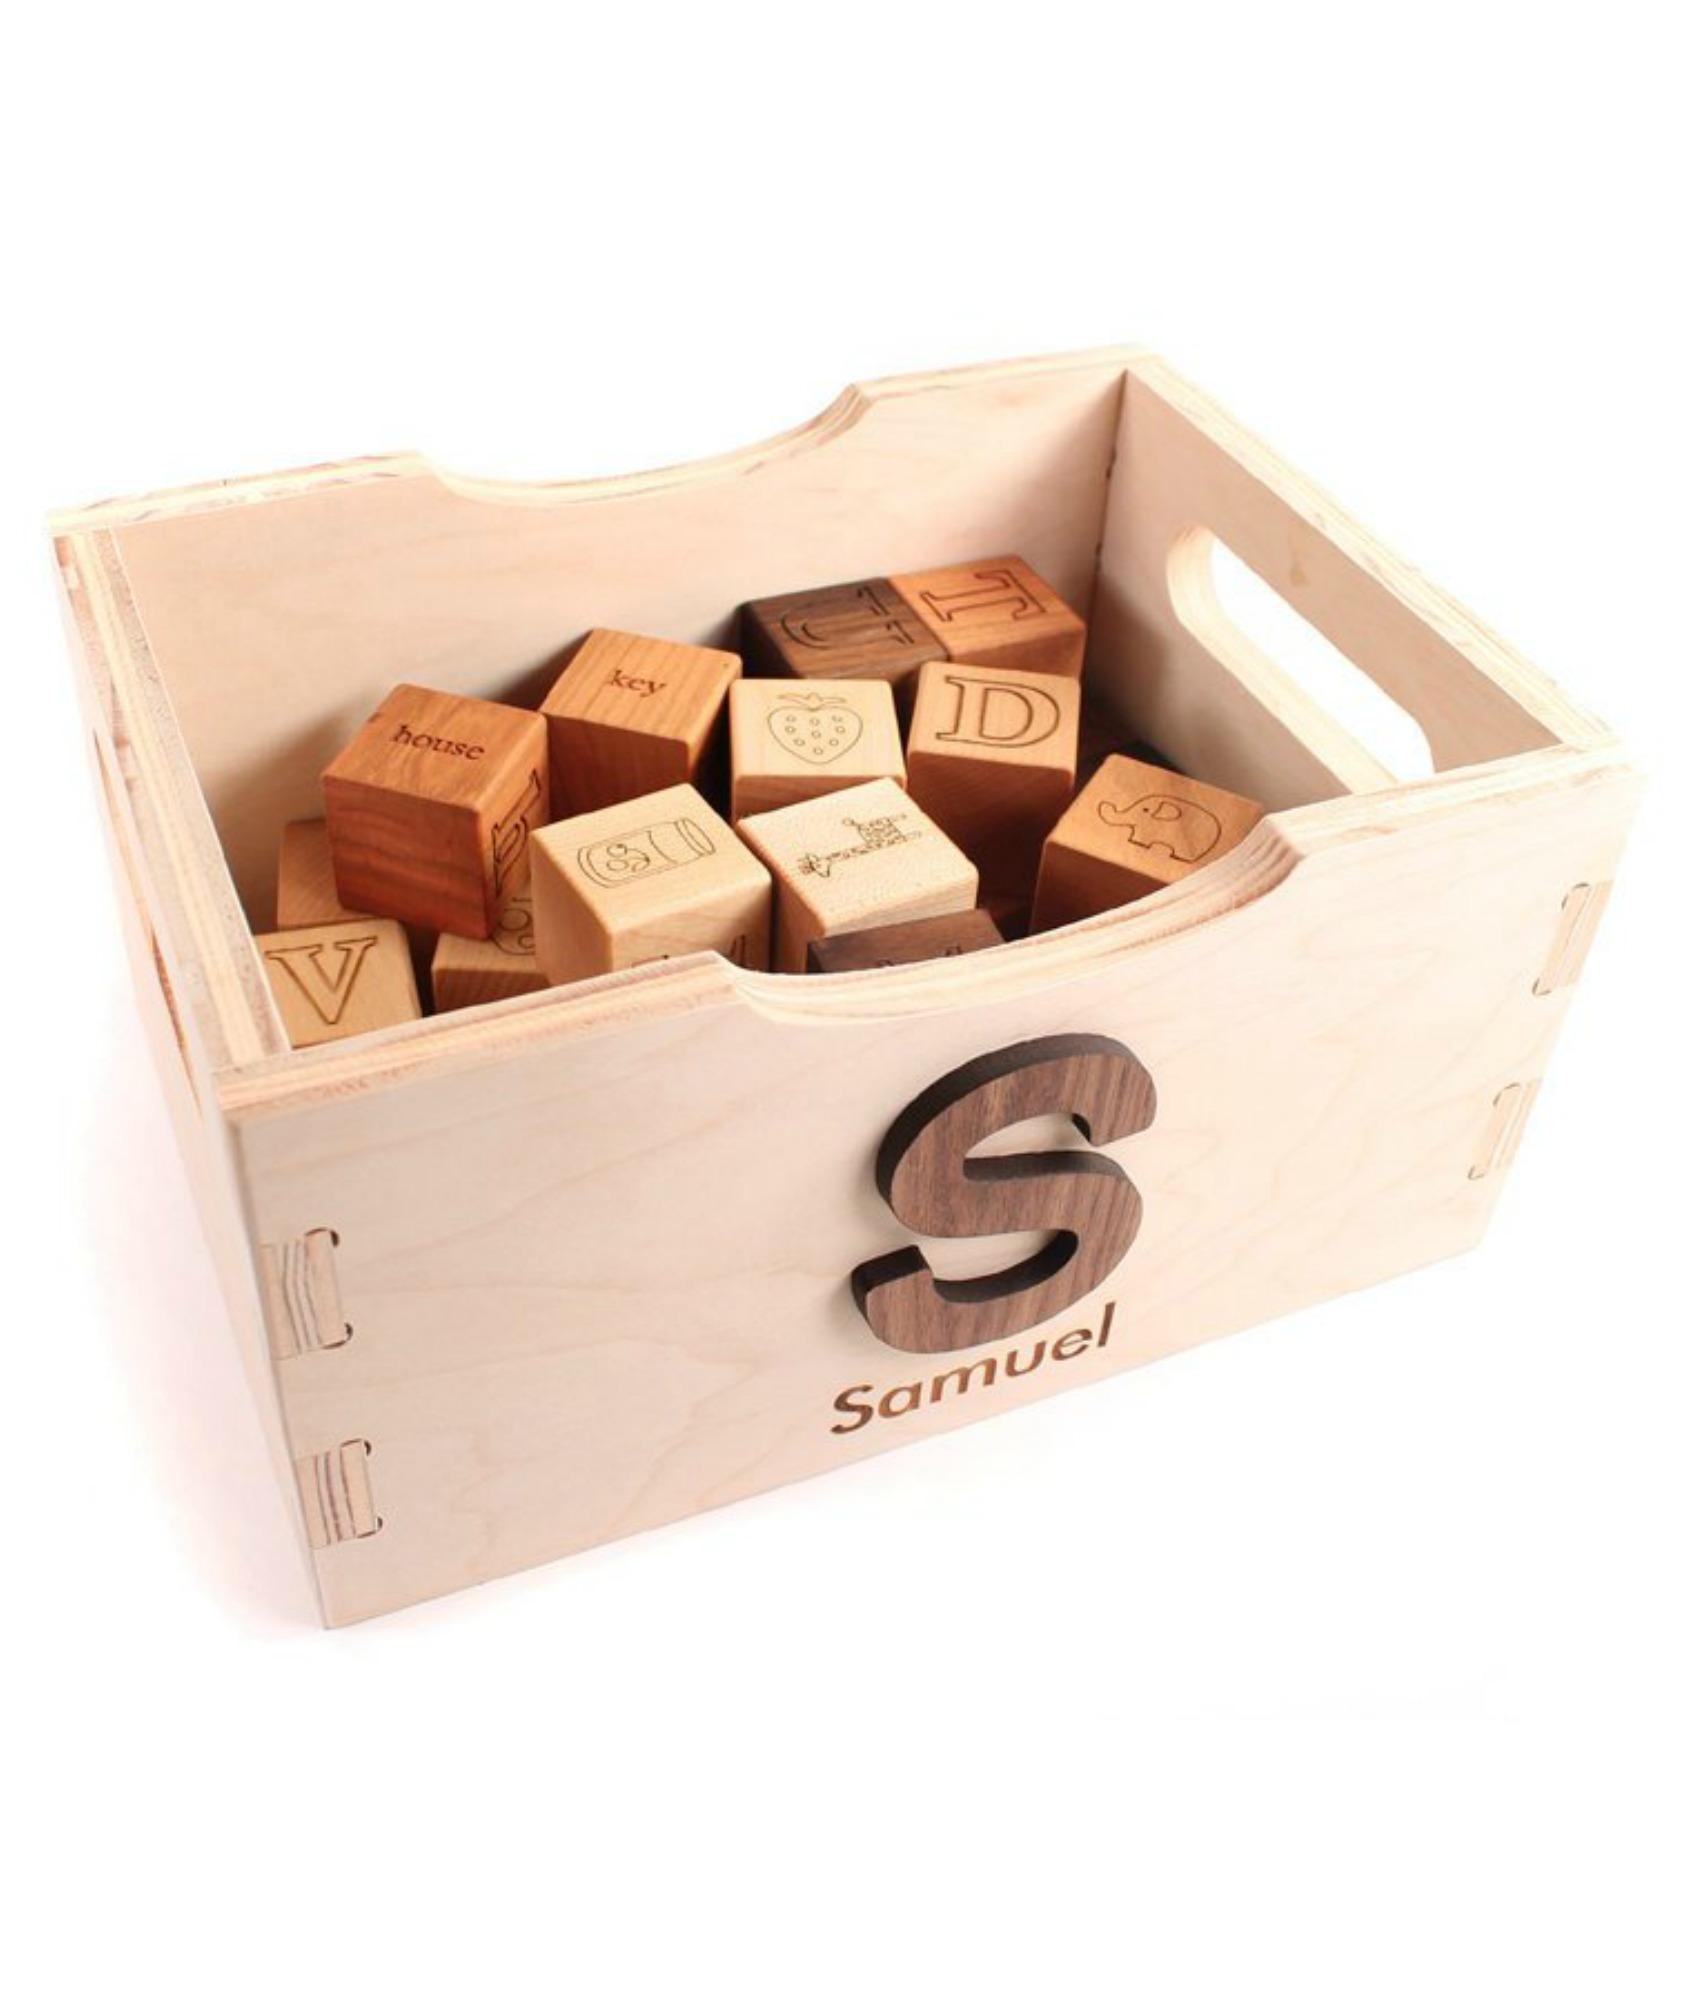 Personalized wooden toy crate at Smiling Tree Toys | The Coolest First Birthday Gifts